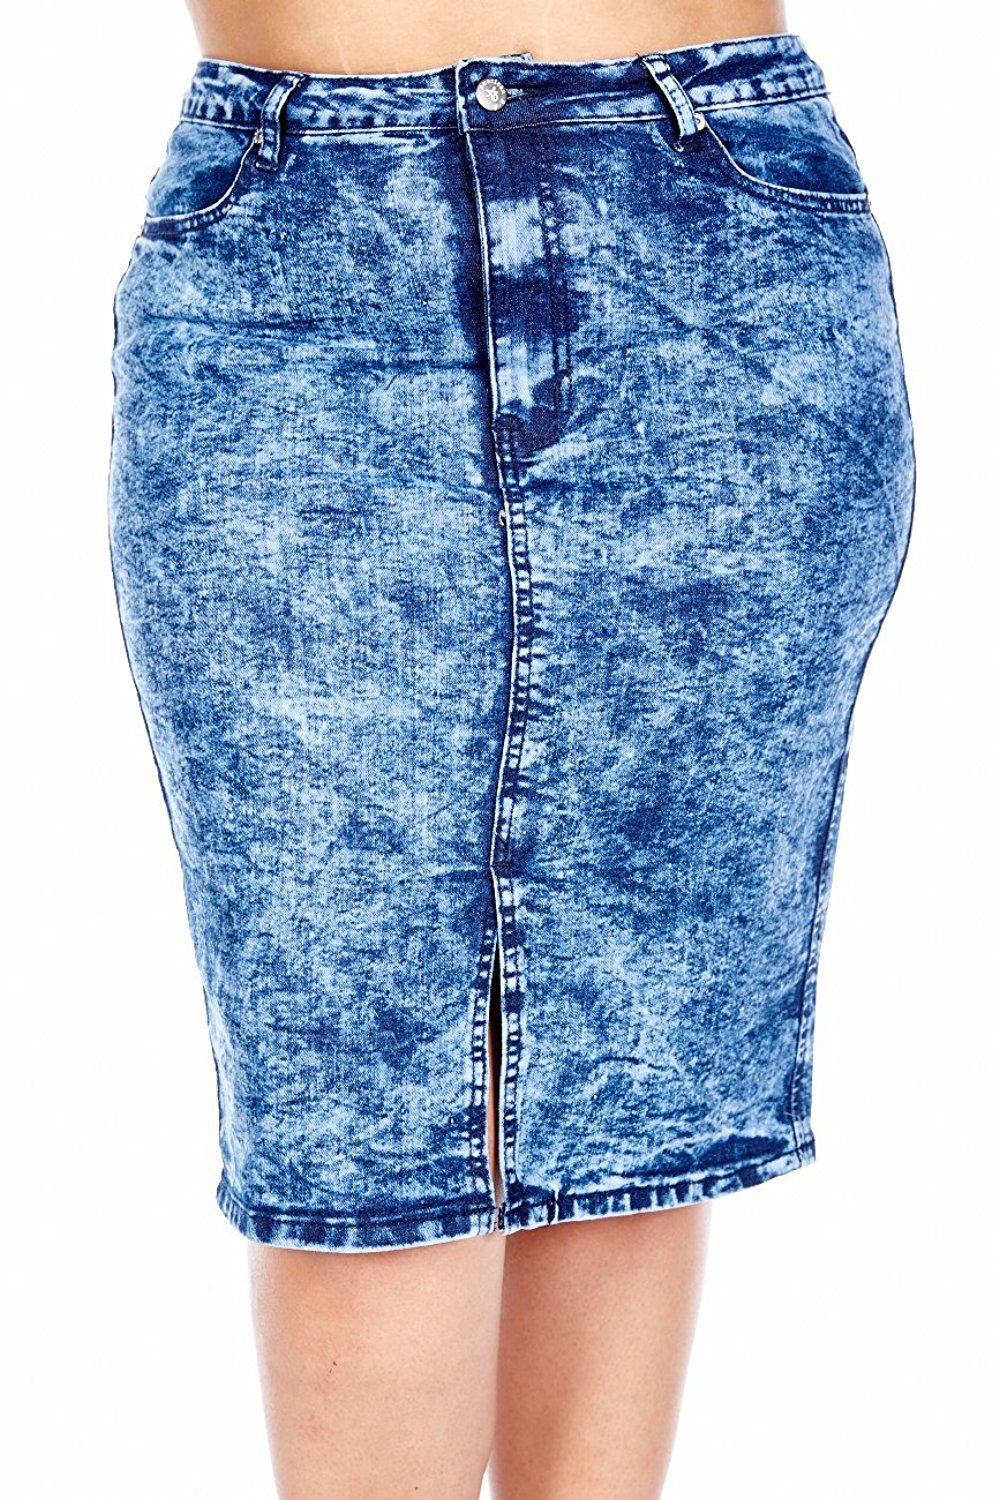 f20e06b2d94 Womens Plus Size Acid Wash Denim Slit Cut Pencil Skirt RJSK-148 -- This is  an Amazon Affiliate link. To view further for this item